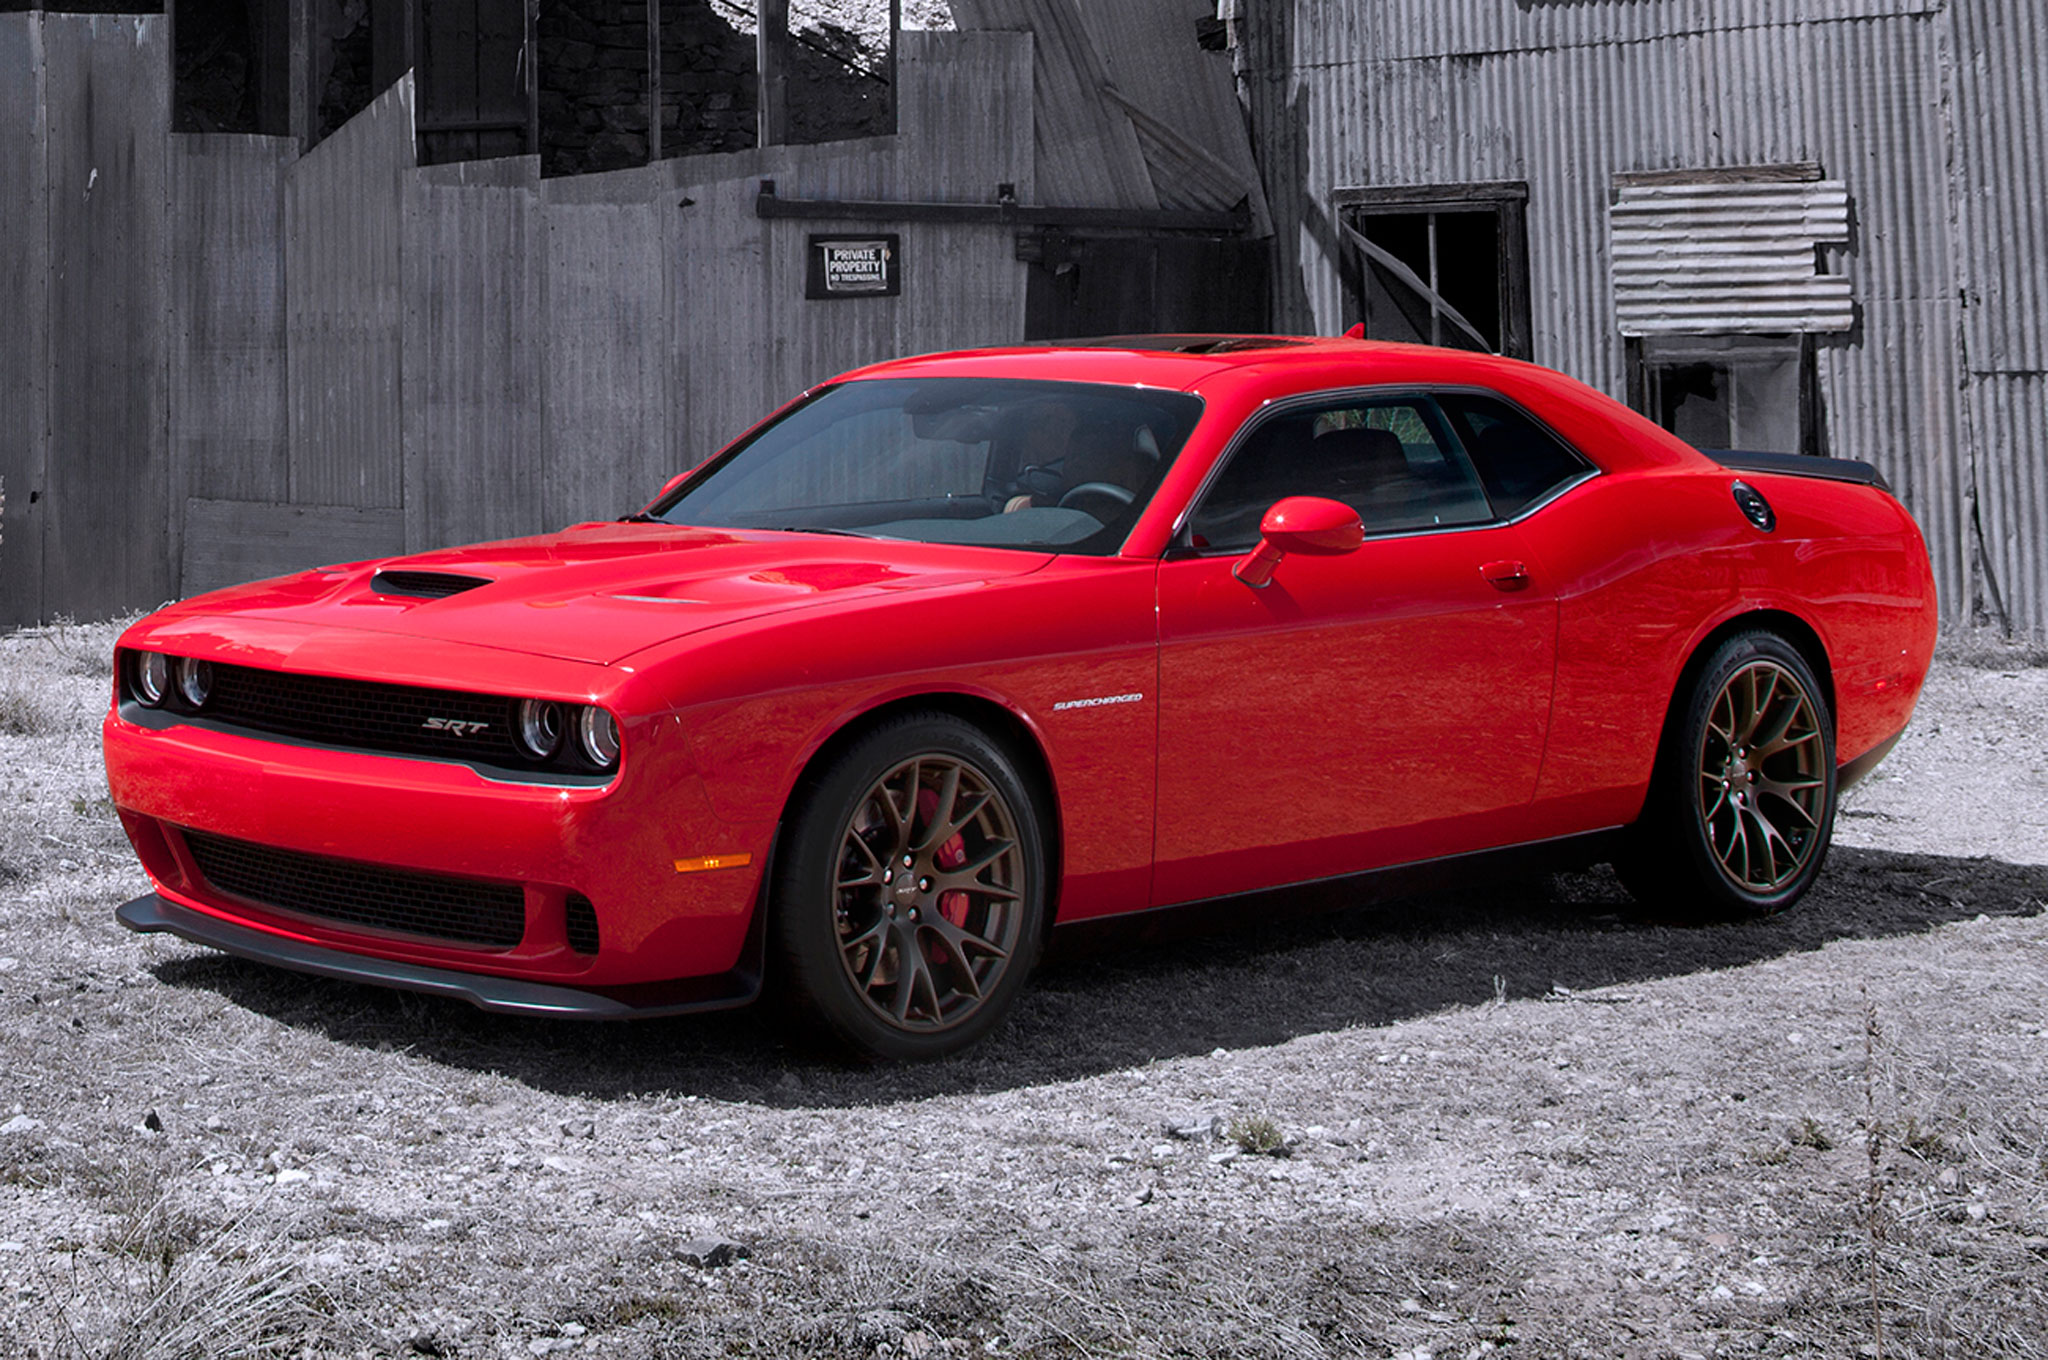 2015 Dodge Challenger SRT Hellcat Front Side View Parked